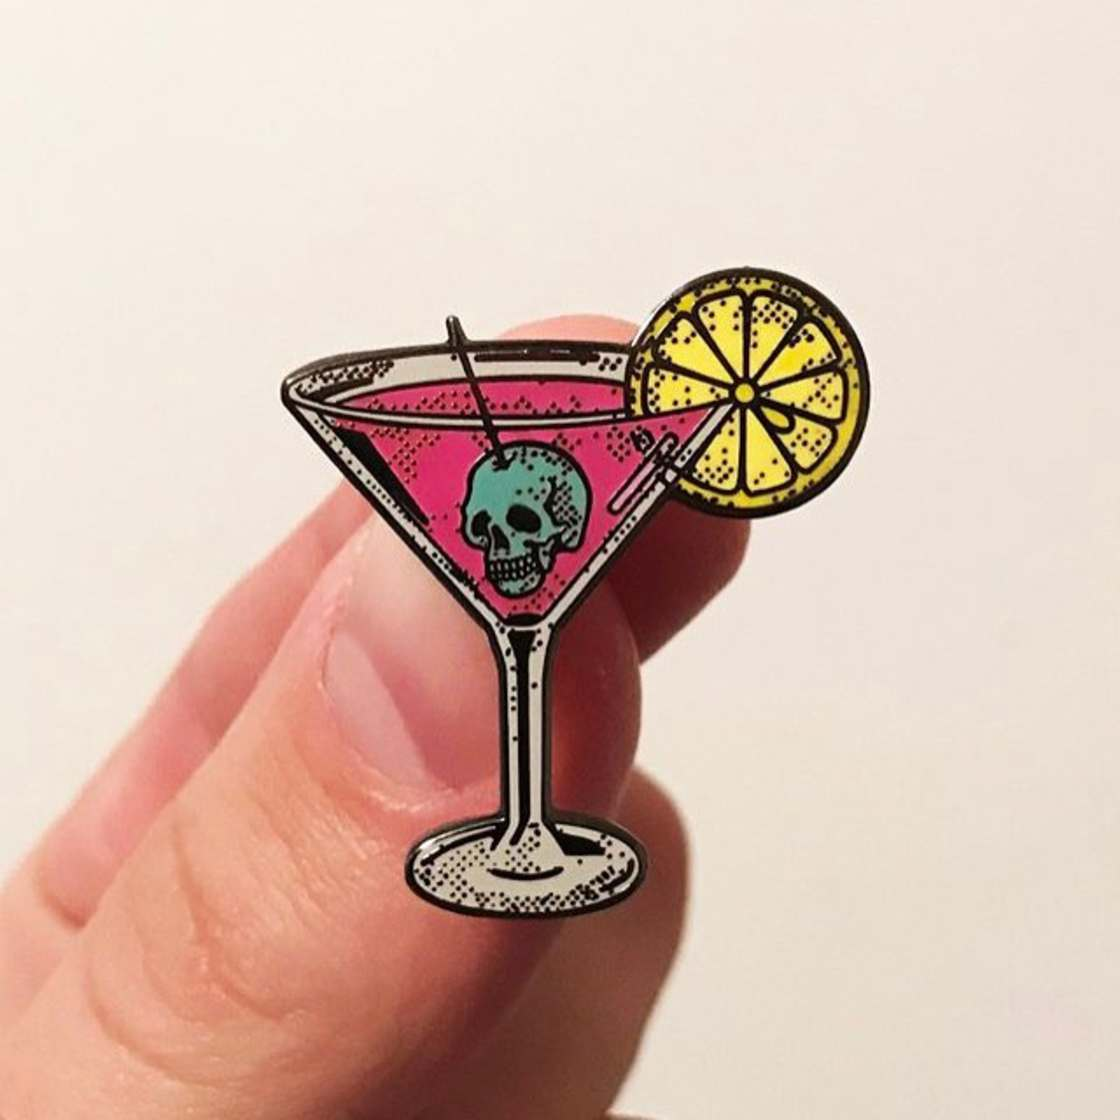 The pop and colorful pins by Strike Gently